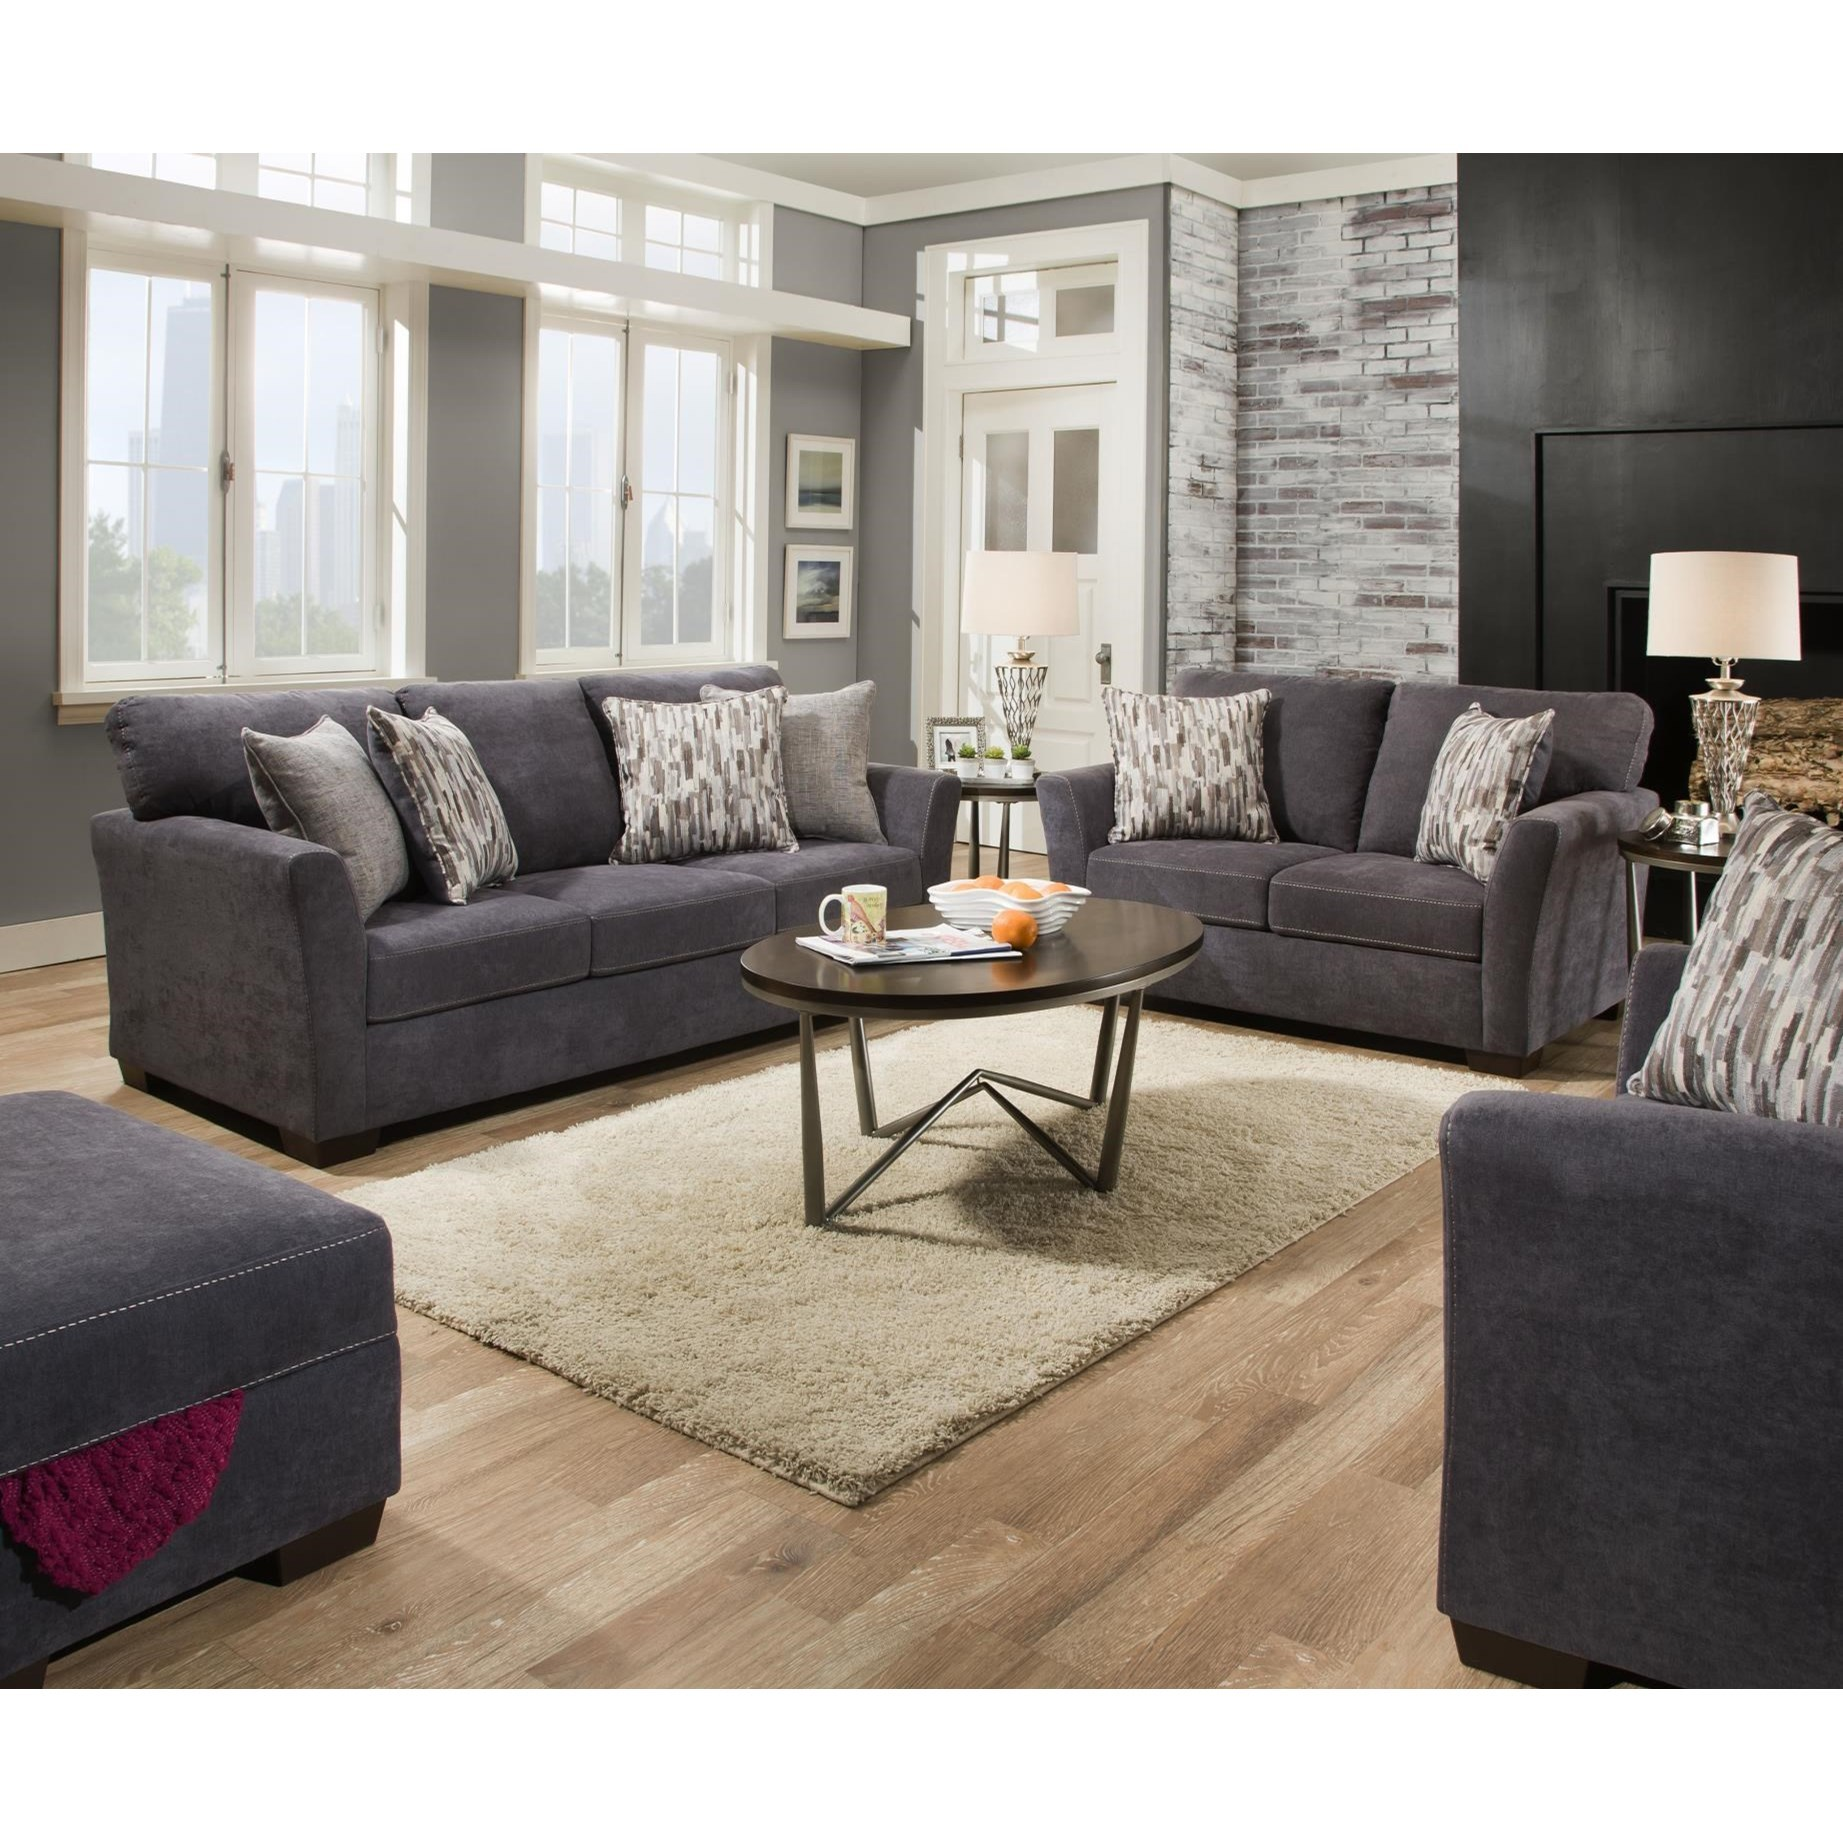 7058 Living Room Group by Lane at Esprit Decor Home Furnishings